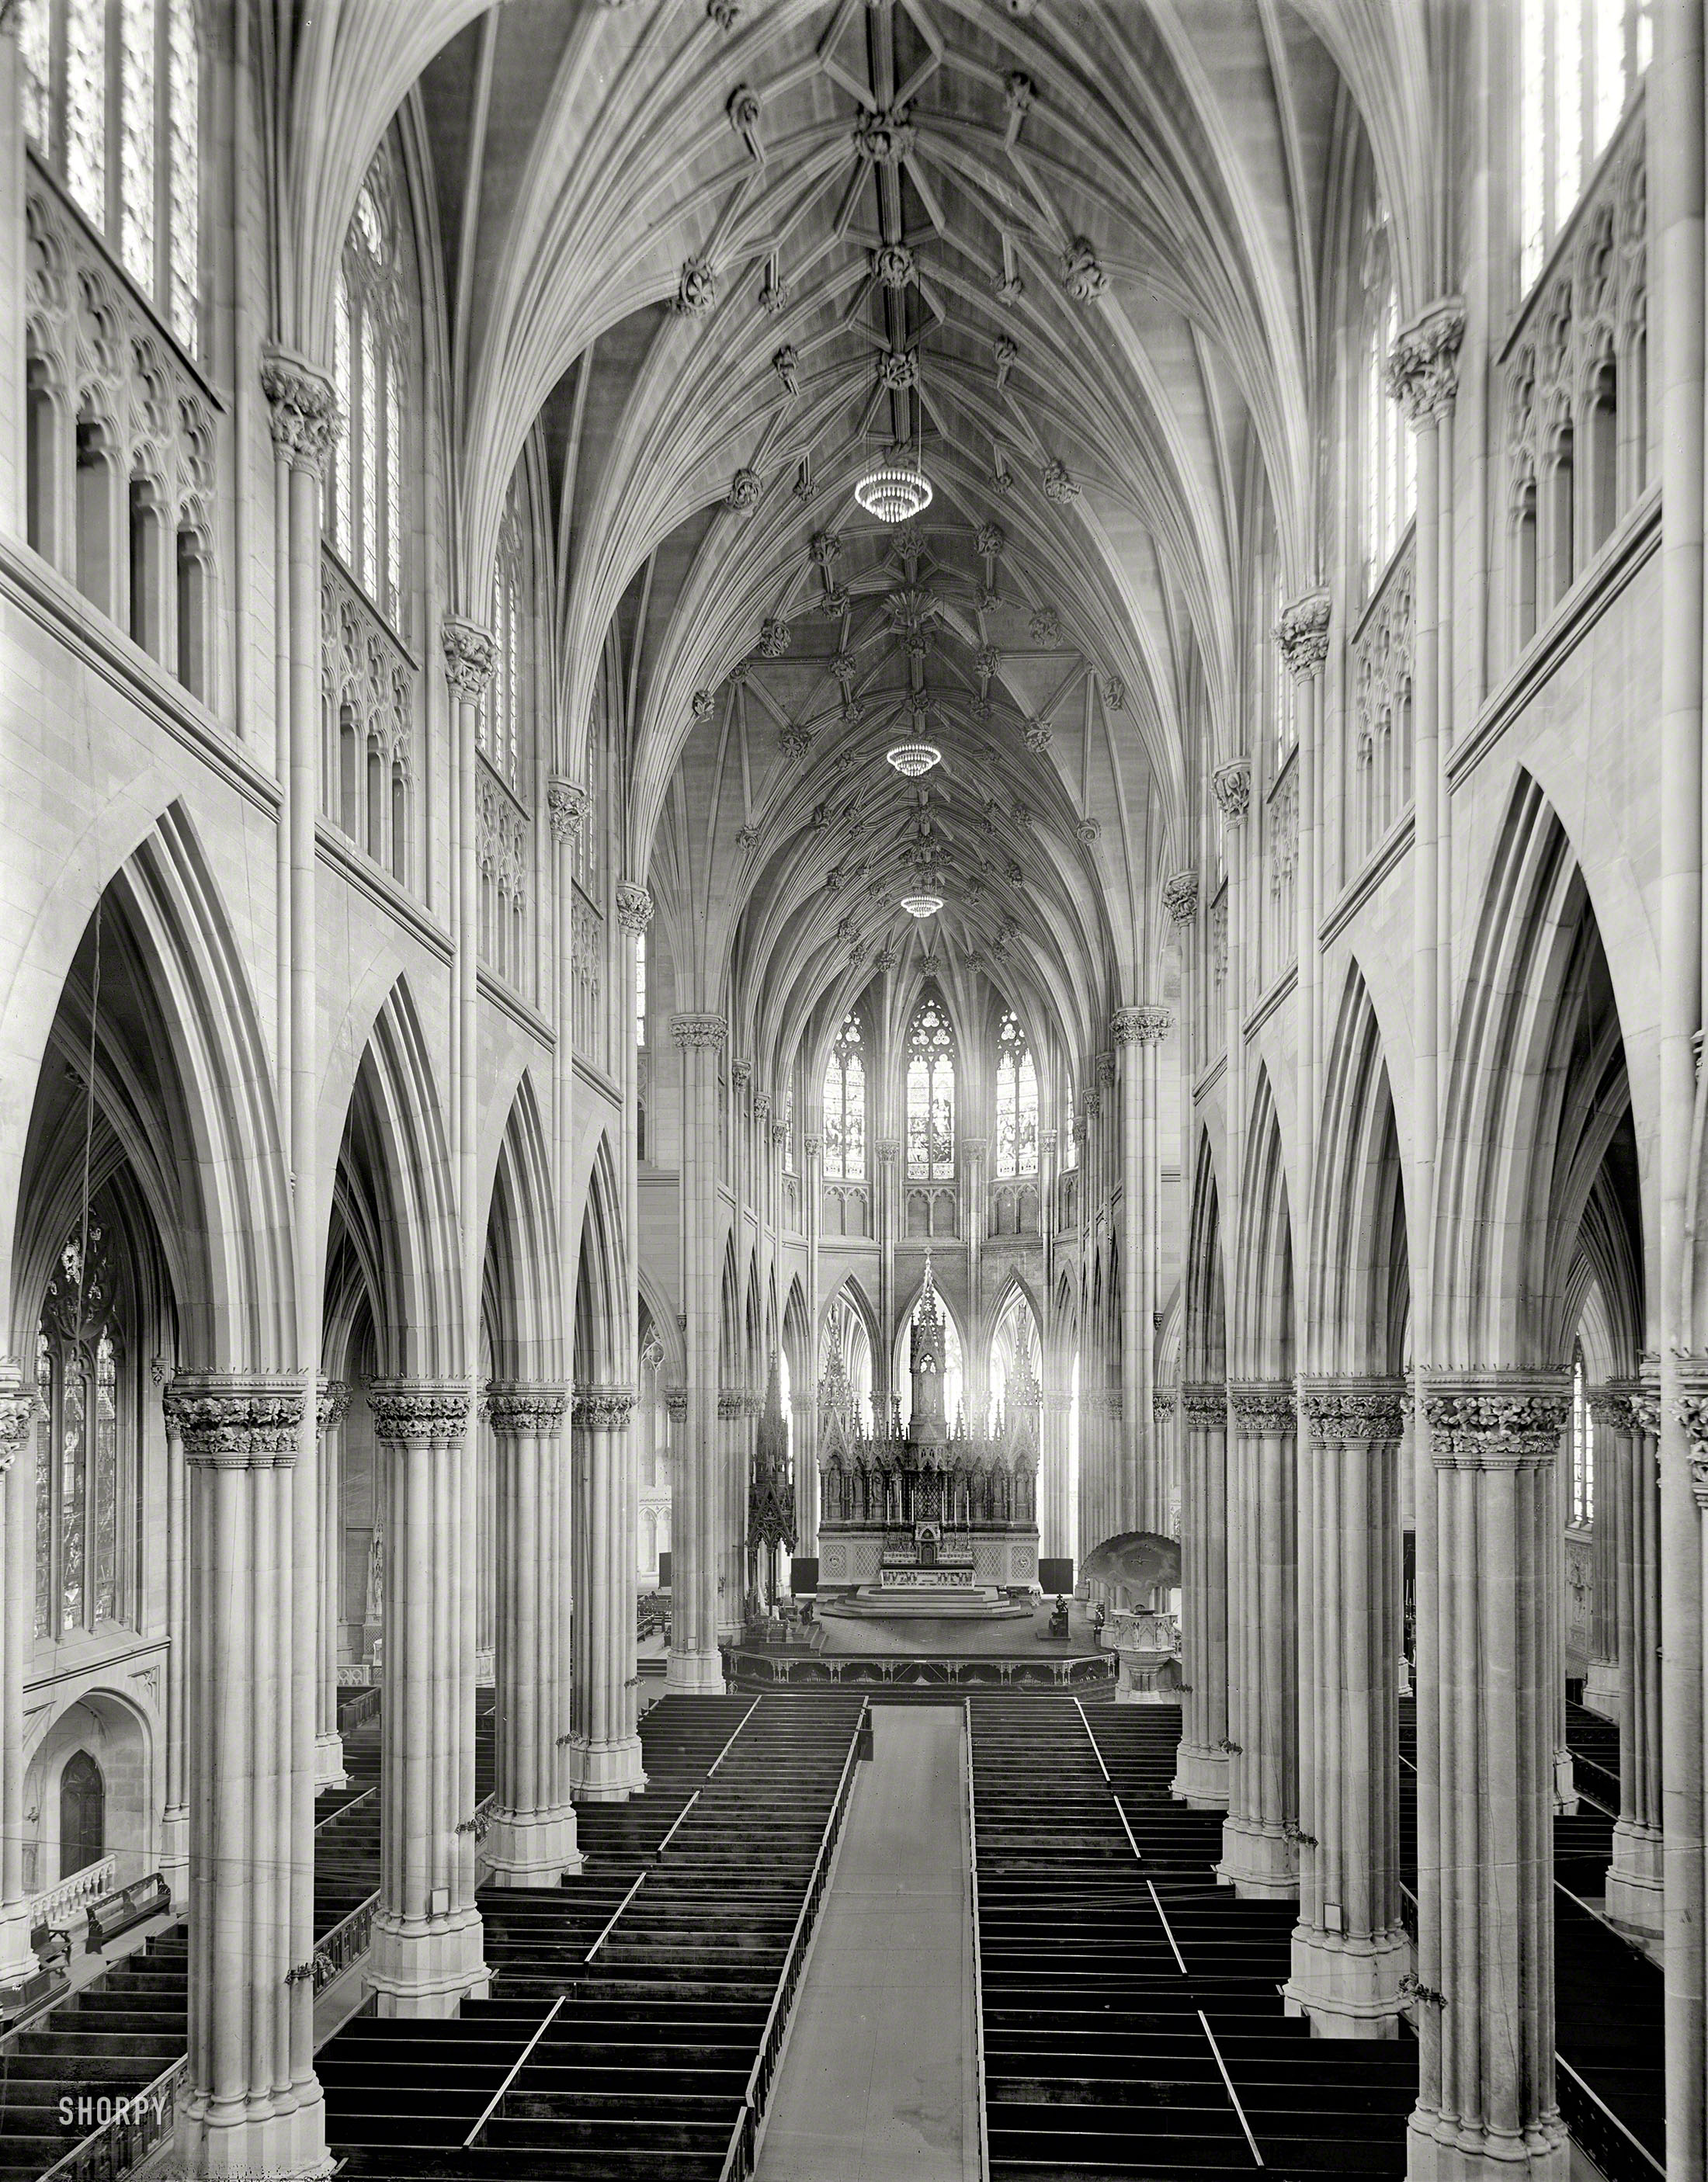 The interior of St. Patrick's Cathedral, circa 1907 (Clean-up photograph courtesy Shorpy.com)